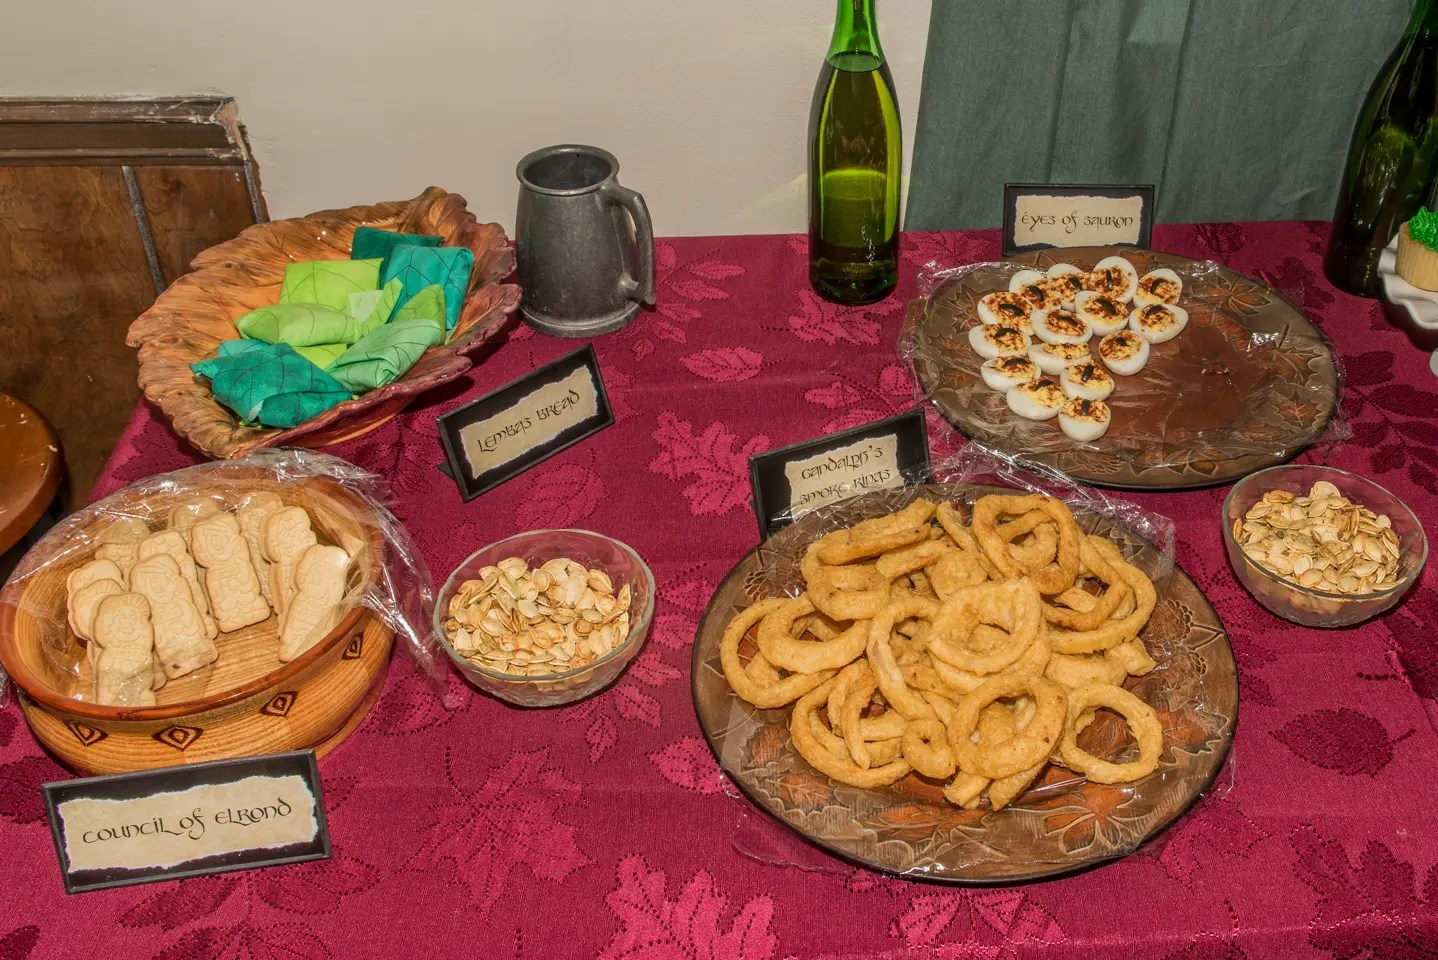 Lord of the Rings Party Menu